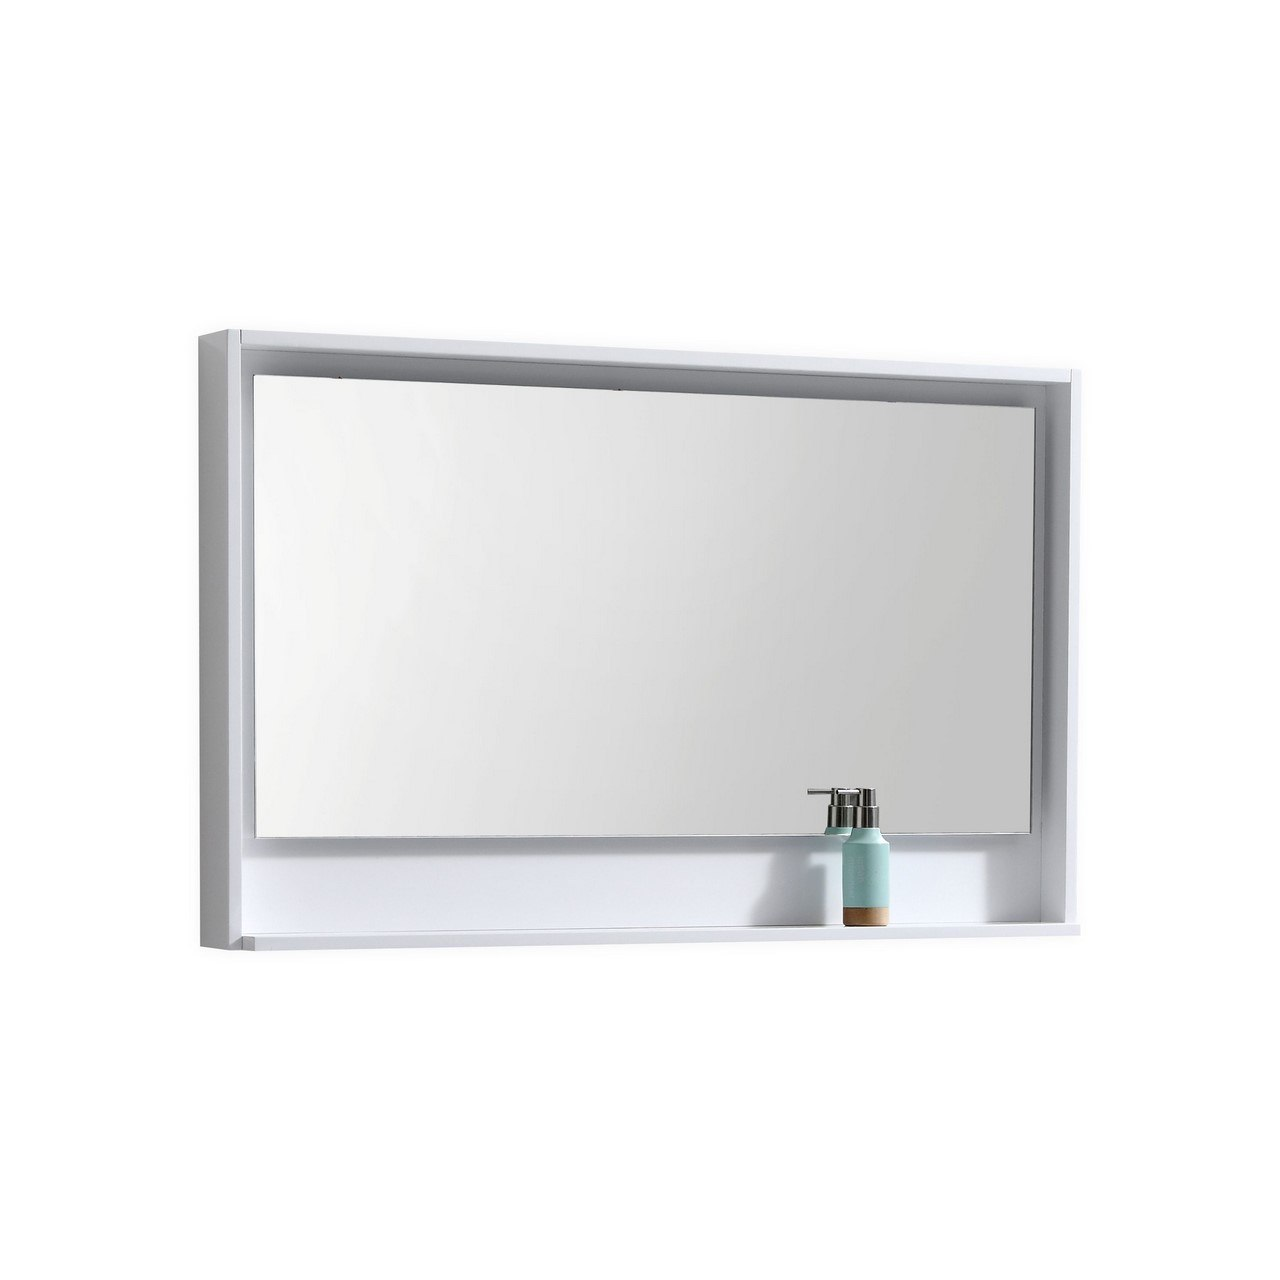 Kubebath KB48GW-M 48 Inch Wide Mirror with Shelf in High Gloss White